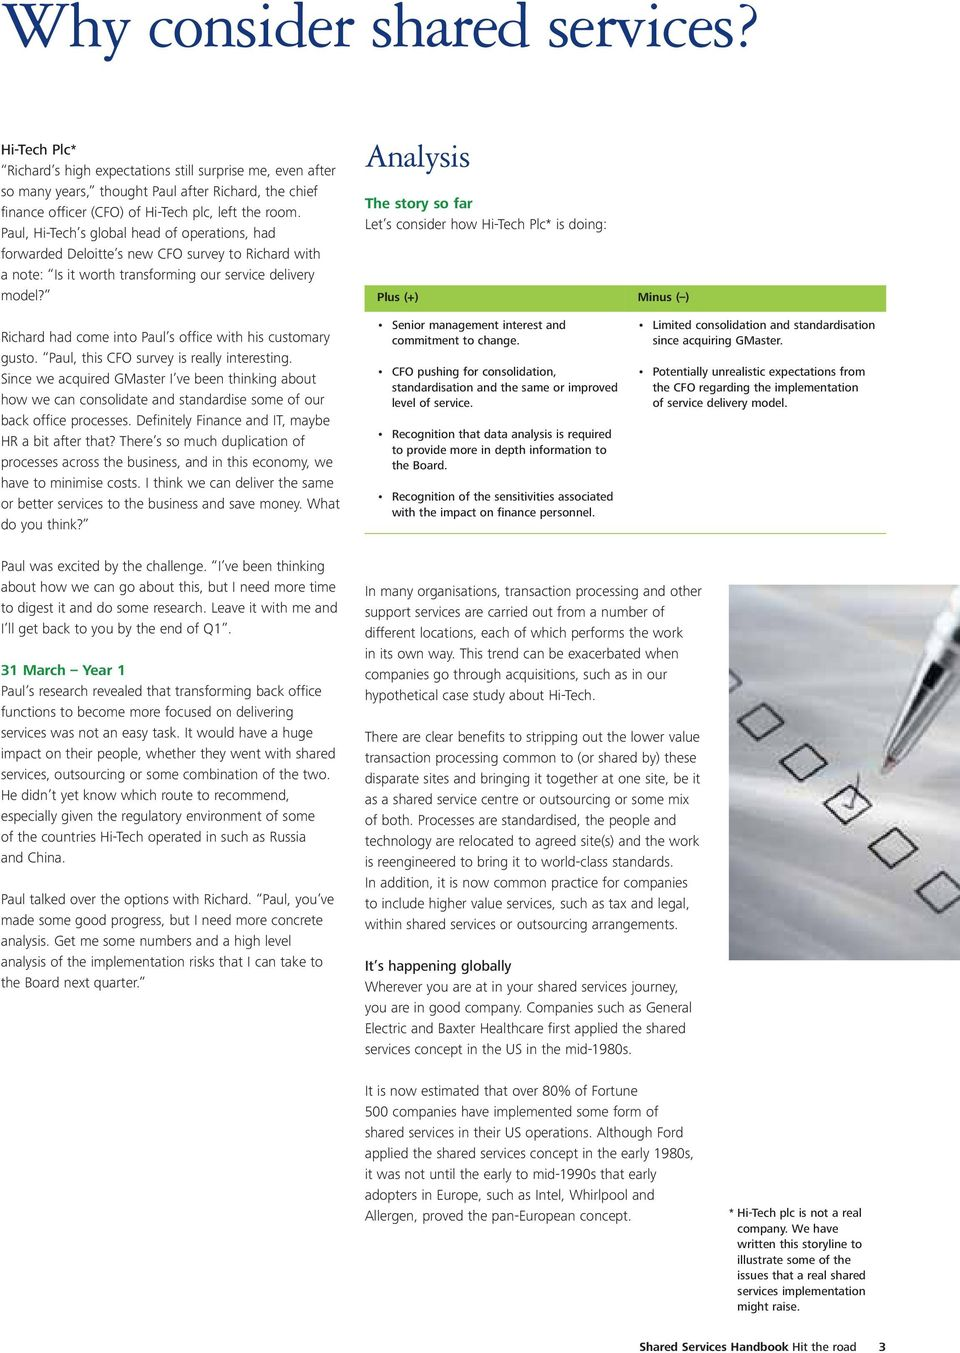 Shared services handbook hit the road pdf paul hi tech s global head of operations had forwarded deloitte s new publicscrutiny Gallery